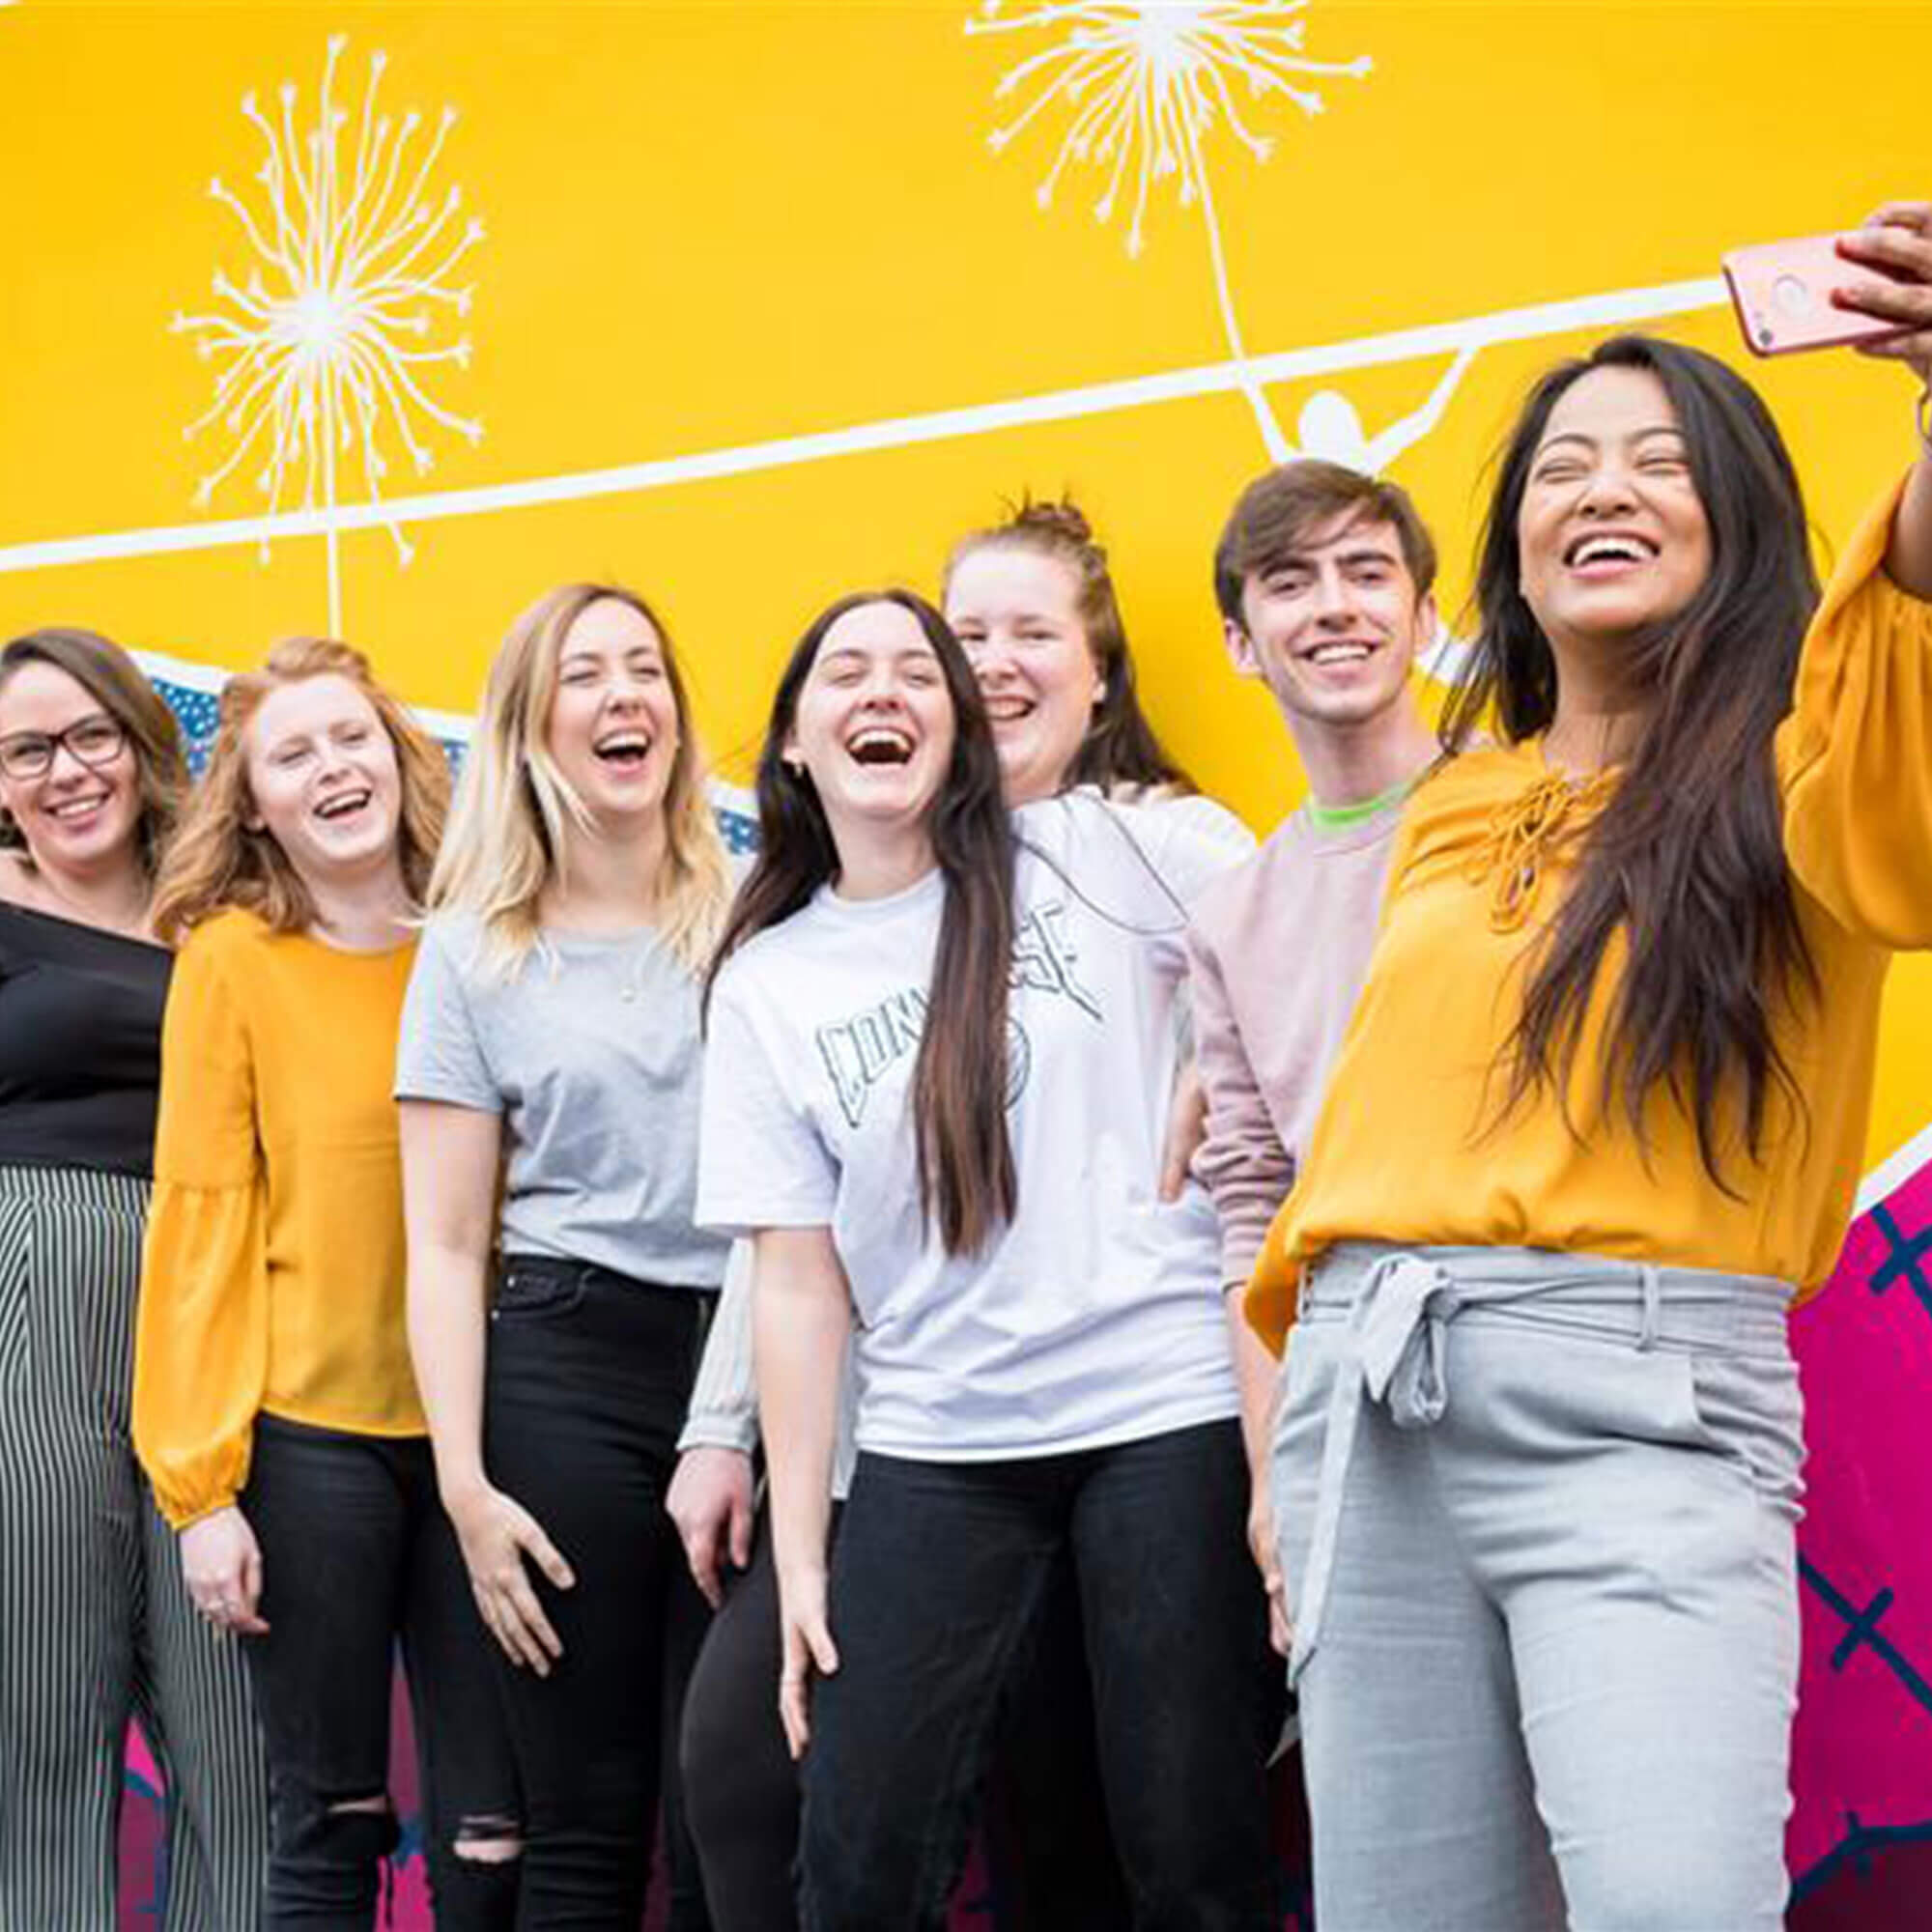 Group of students by a yellow wall taking a selfie